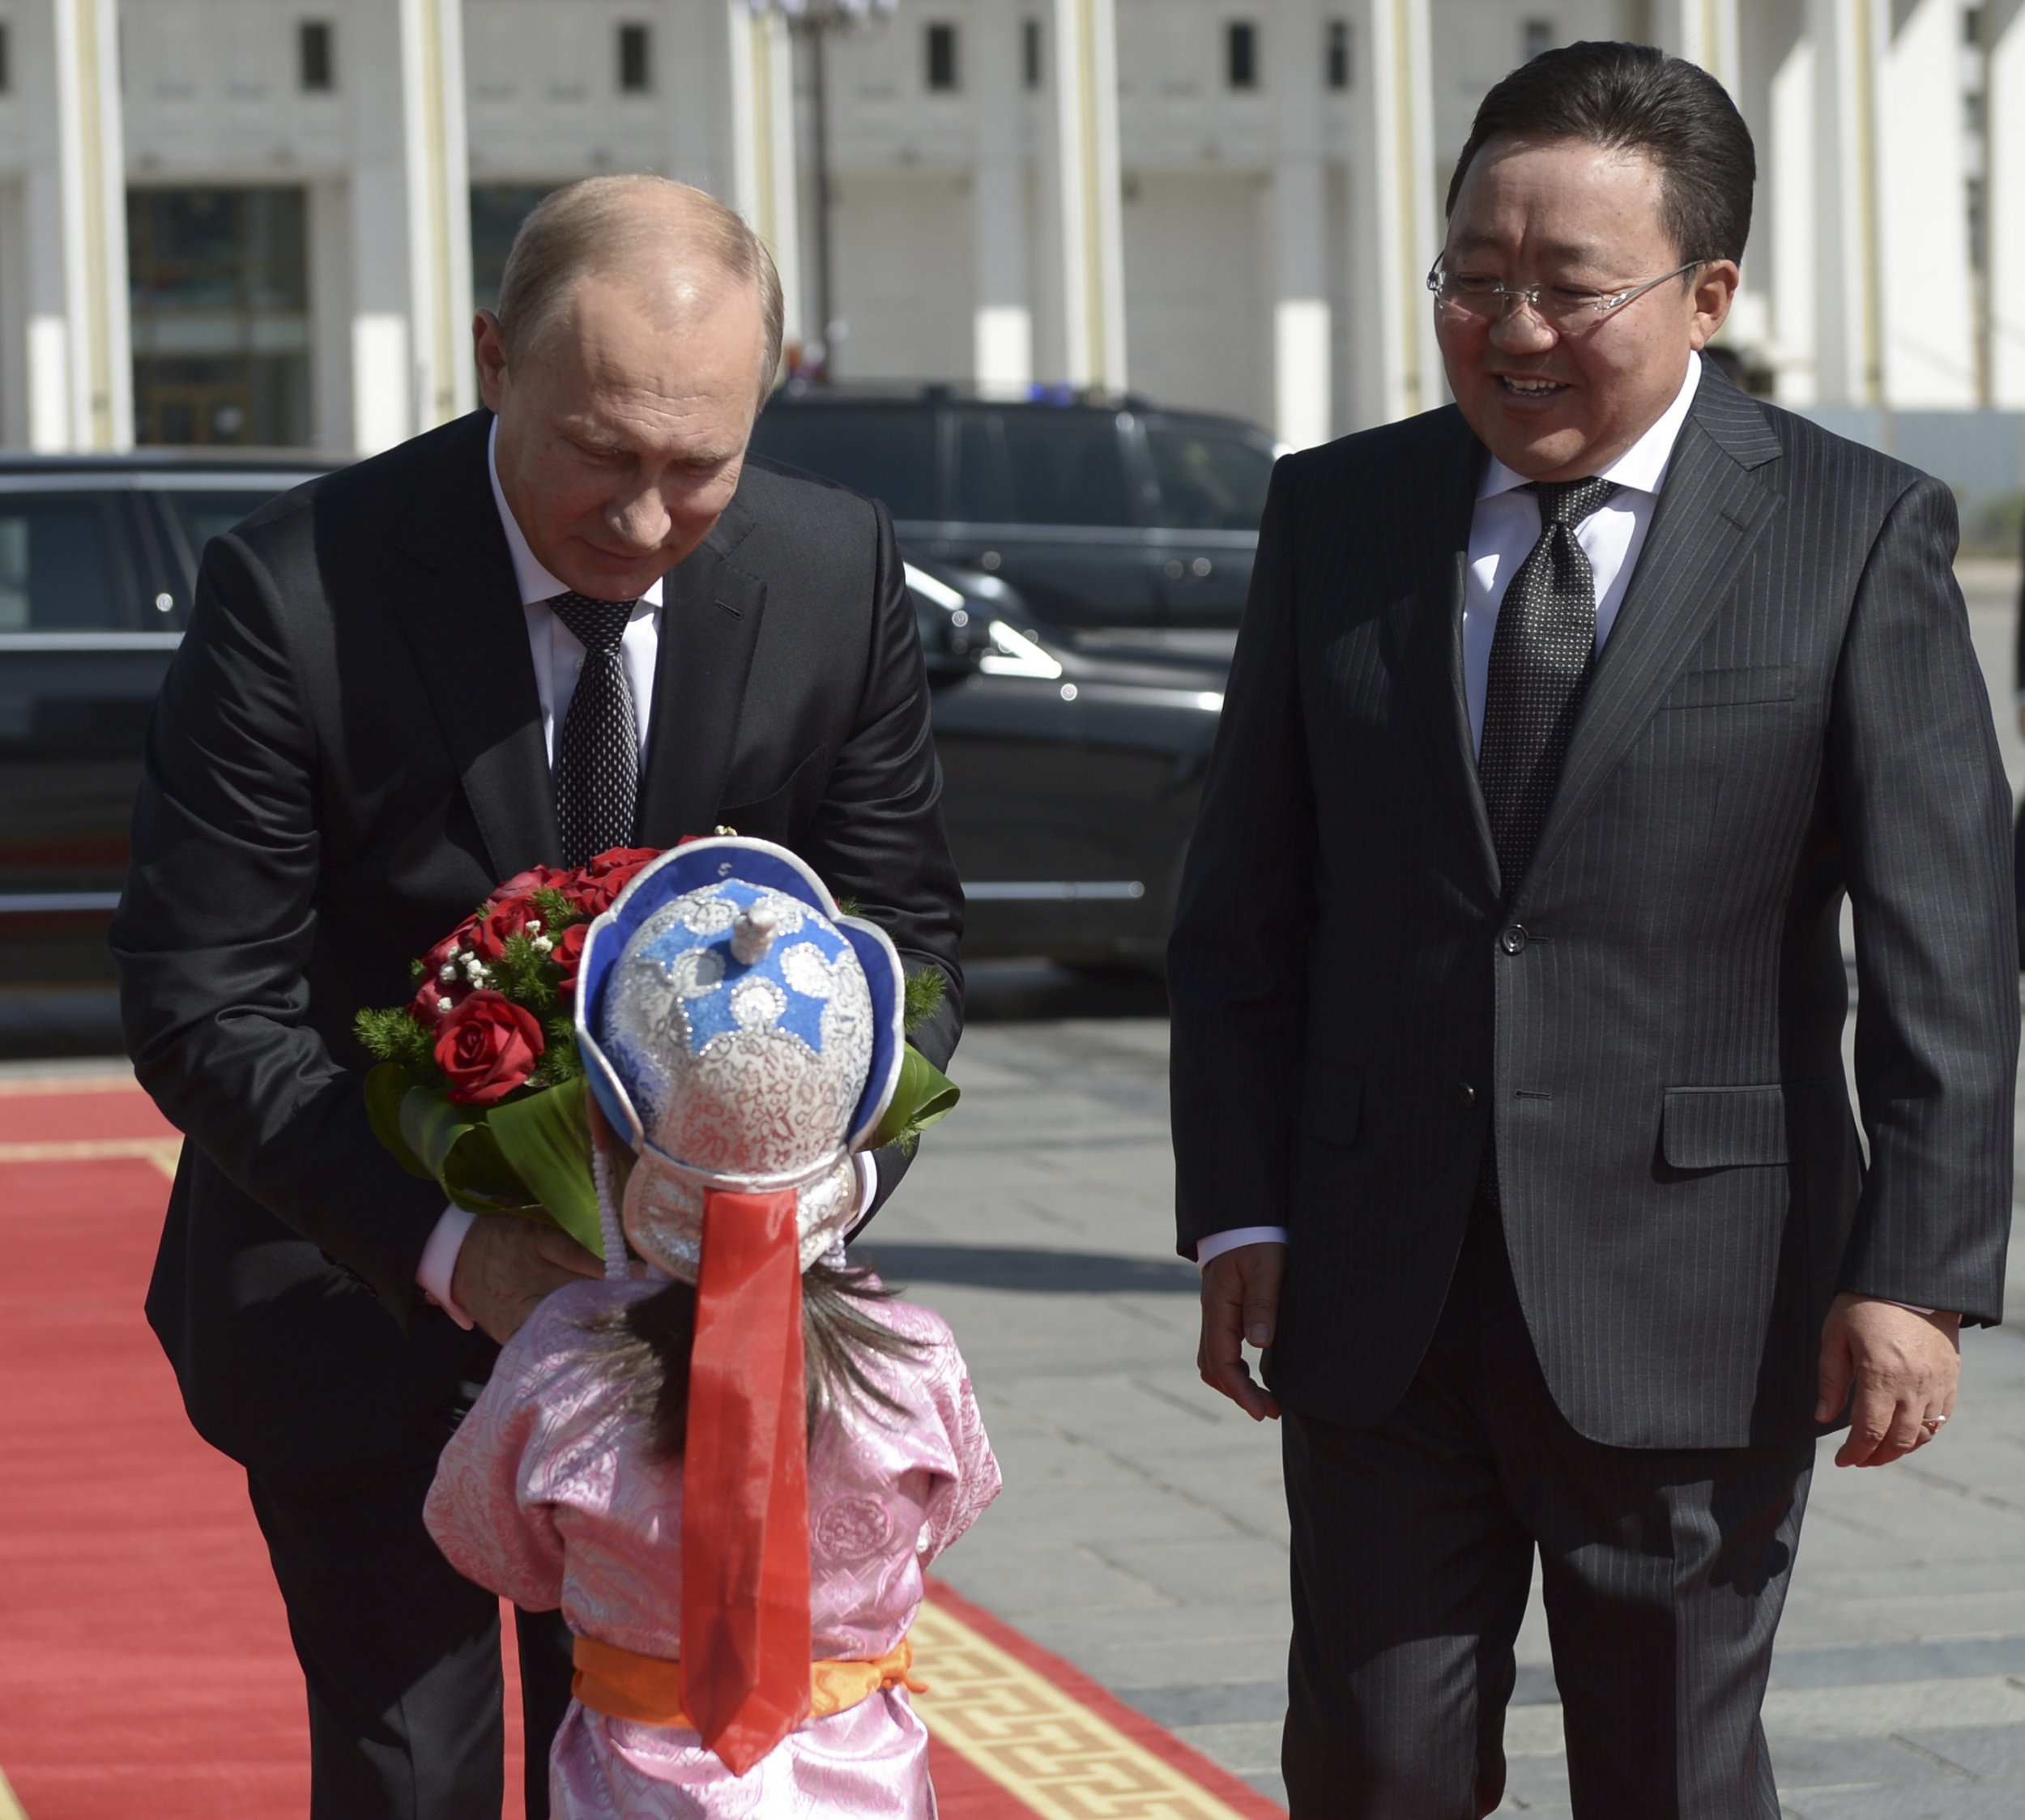 Putin receives flowers